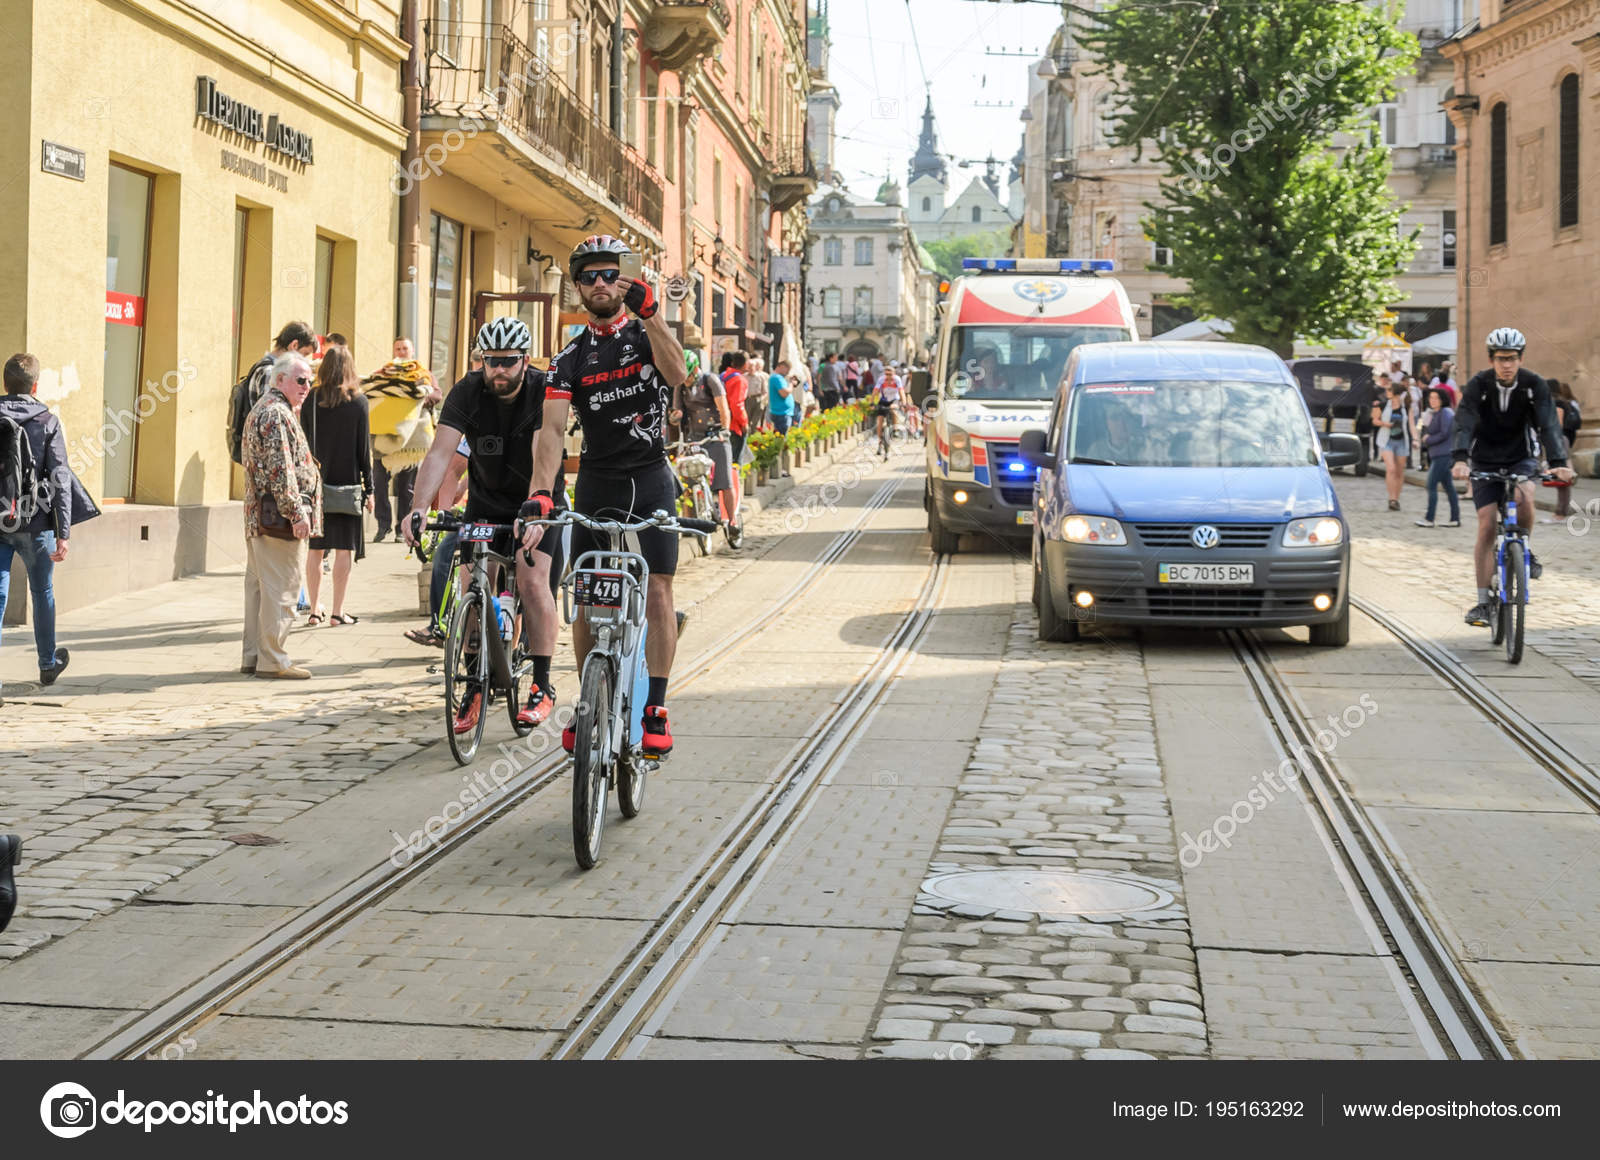 Lviv Ukraine May 2018 Cyclists Athletes Amateurs Bicycles Bicycle Form Stock Photo